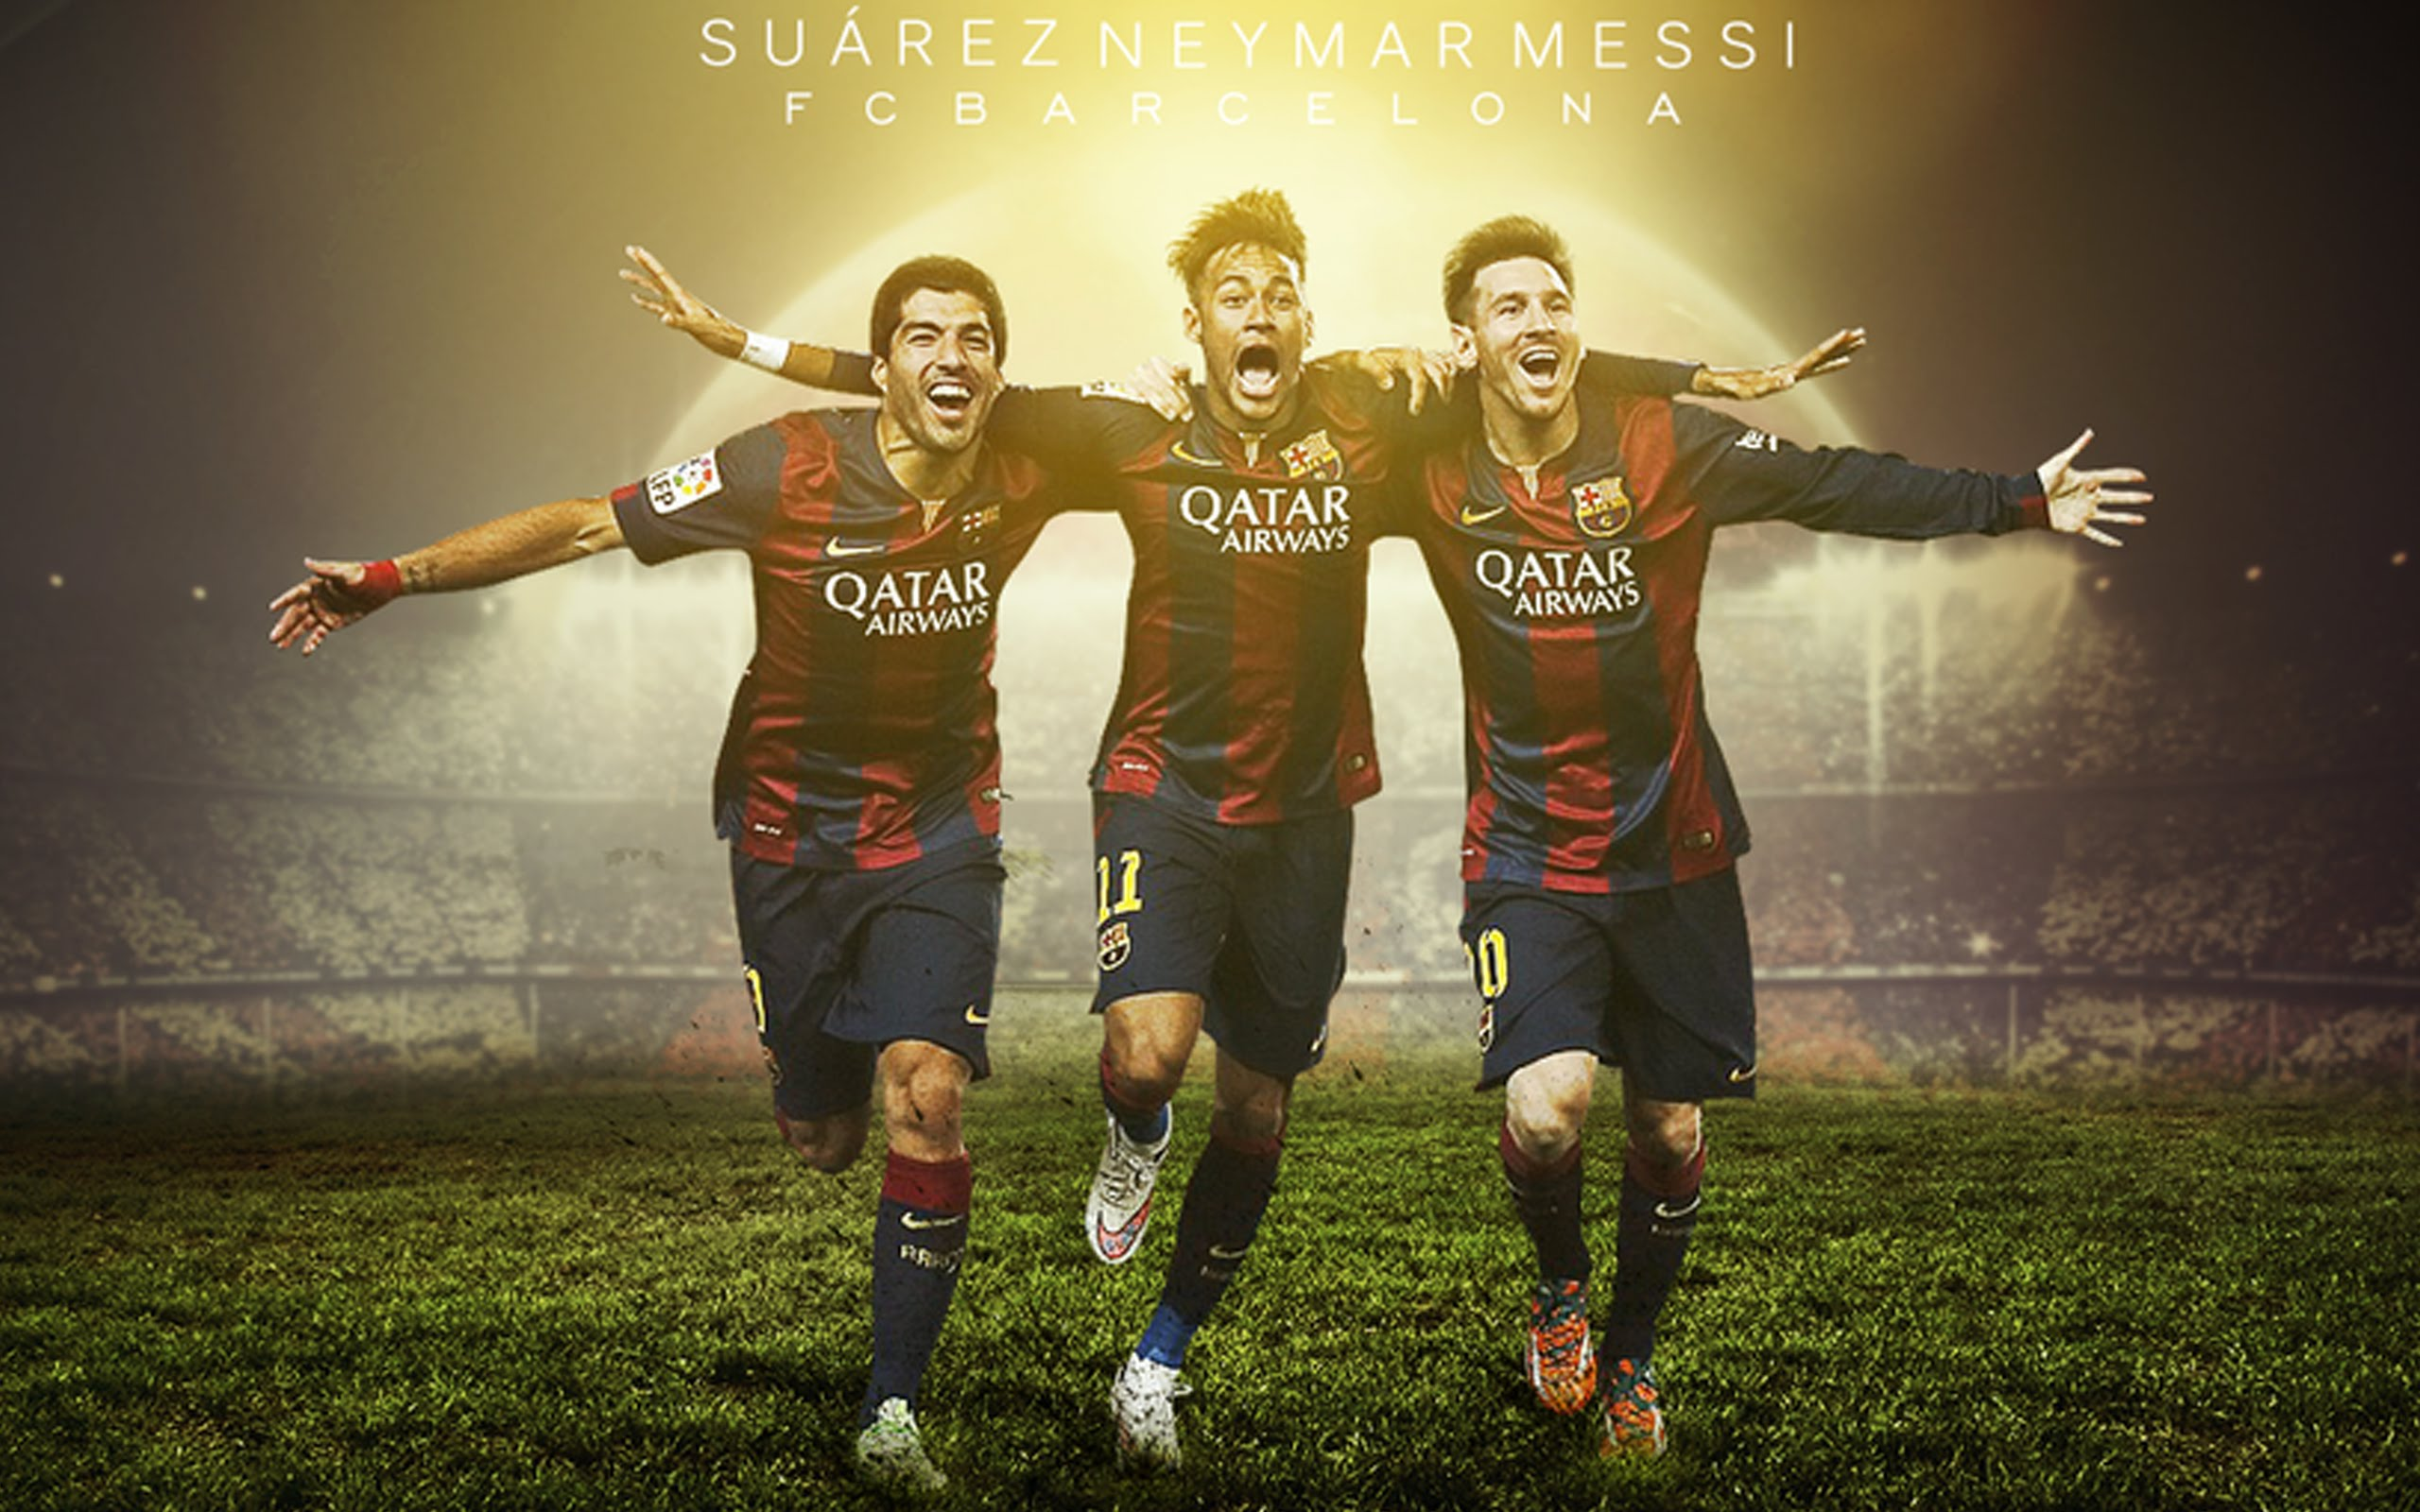 Lionel Messi Wallpapers HD download Wallpapers Backgrounds 2560x1600